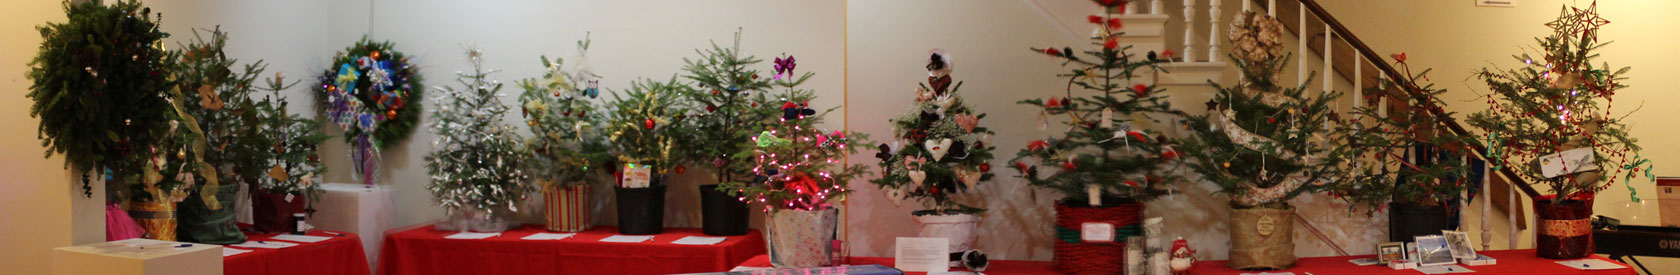 Annual Christmas Tree Festival and Auction